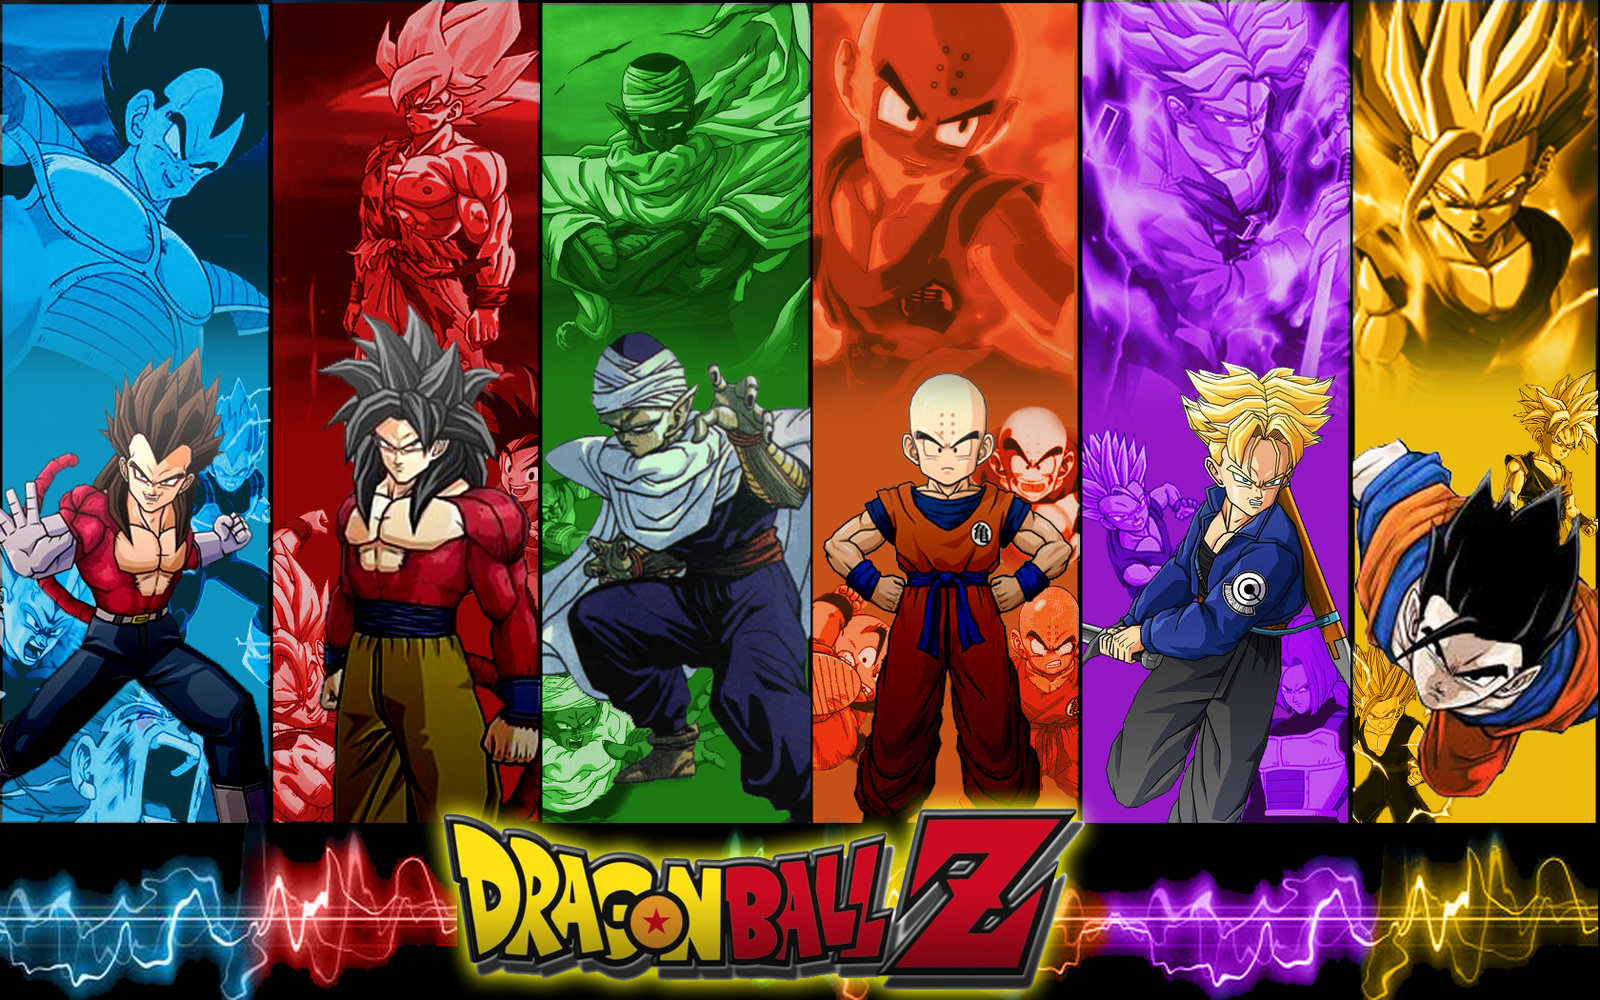 Dragon Ball Z Wallpapers Goku | PixelsTalk.Net